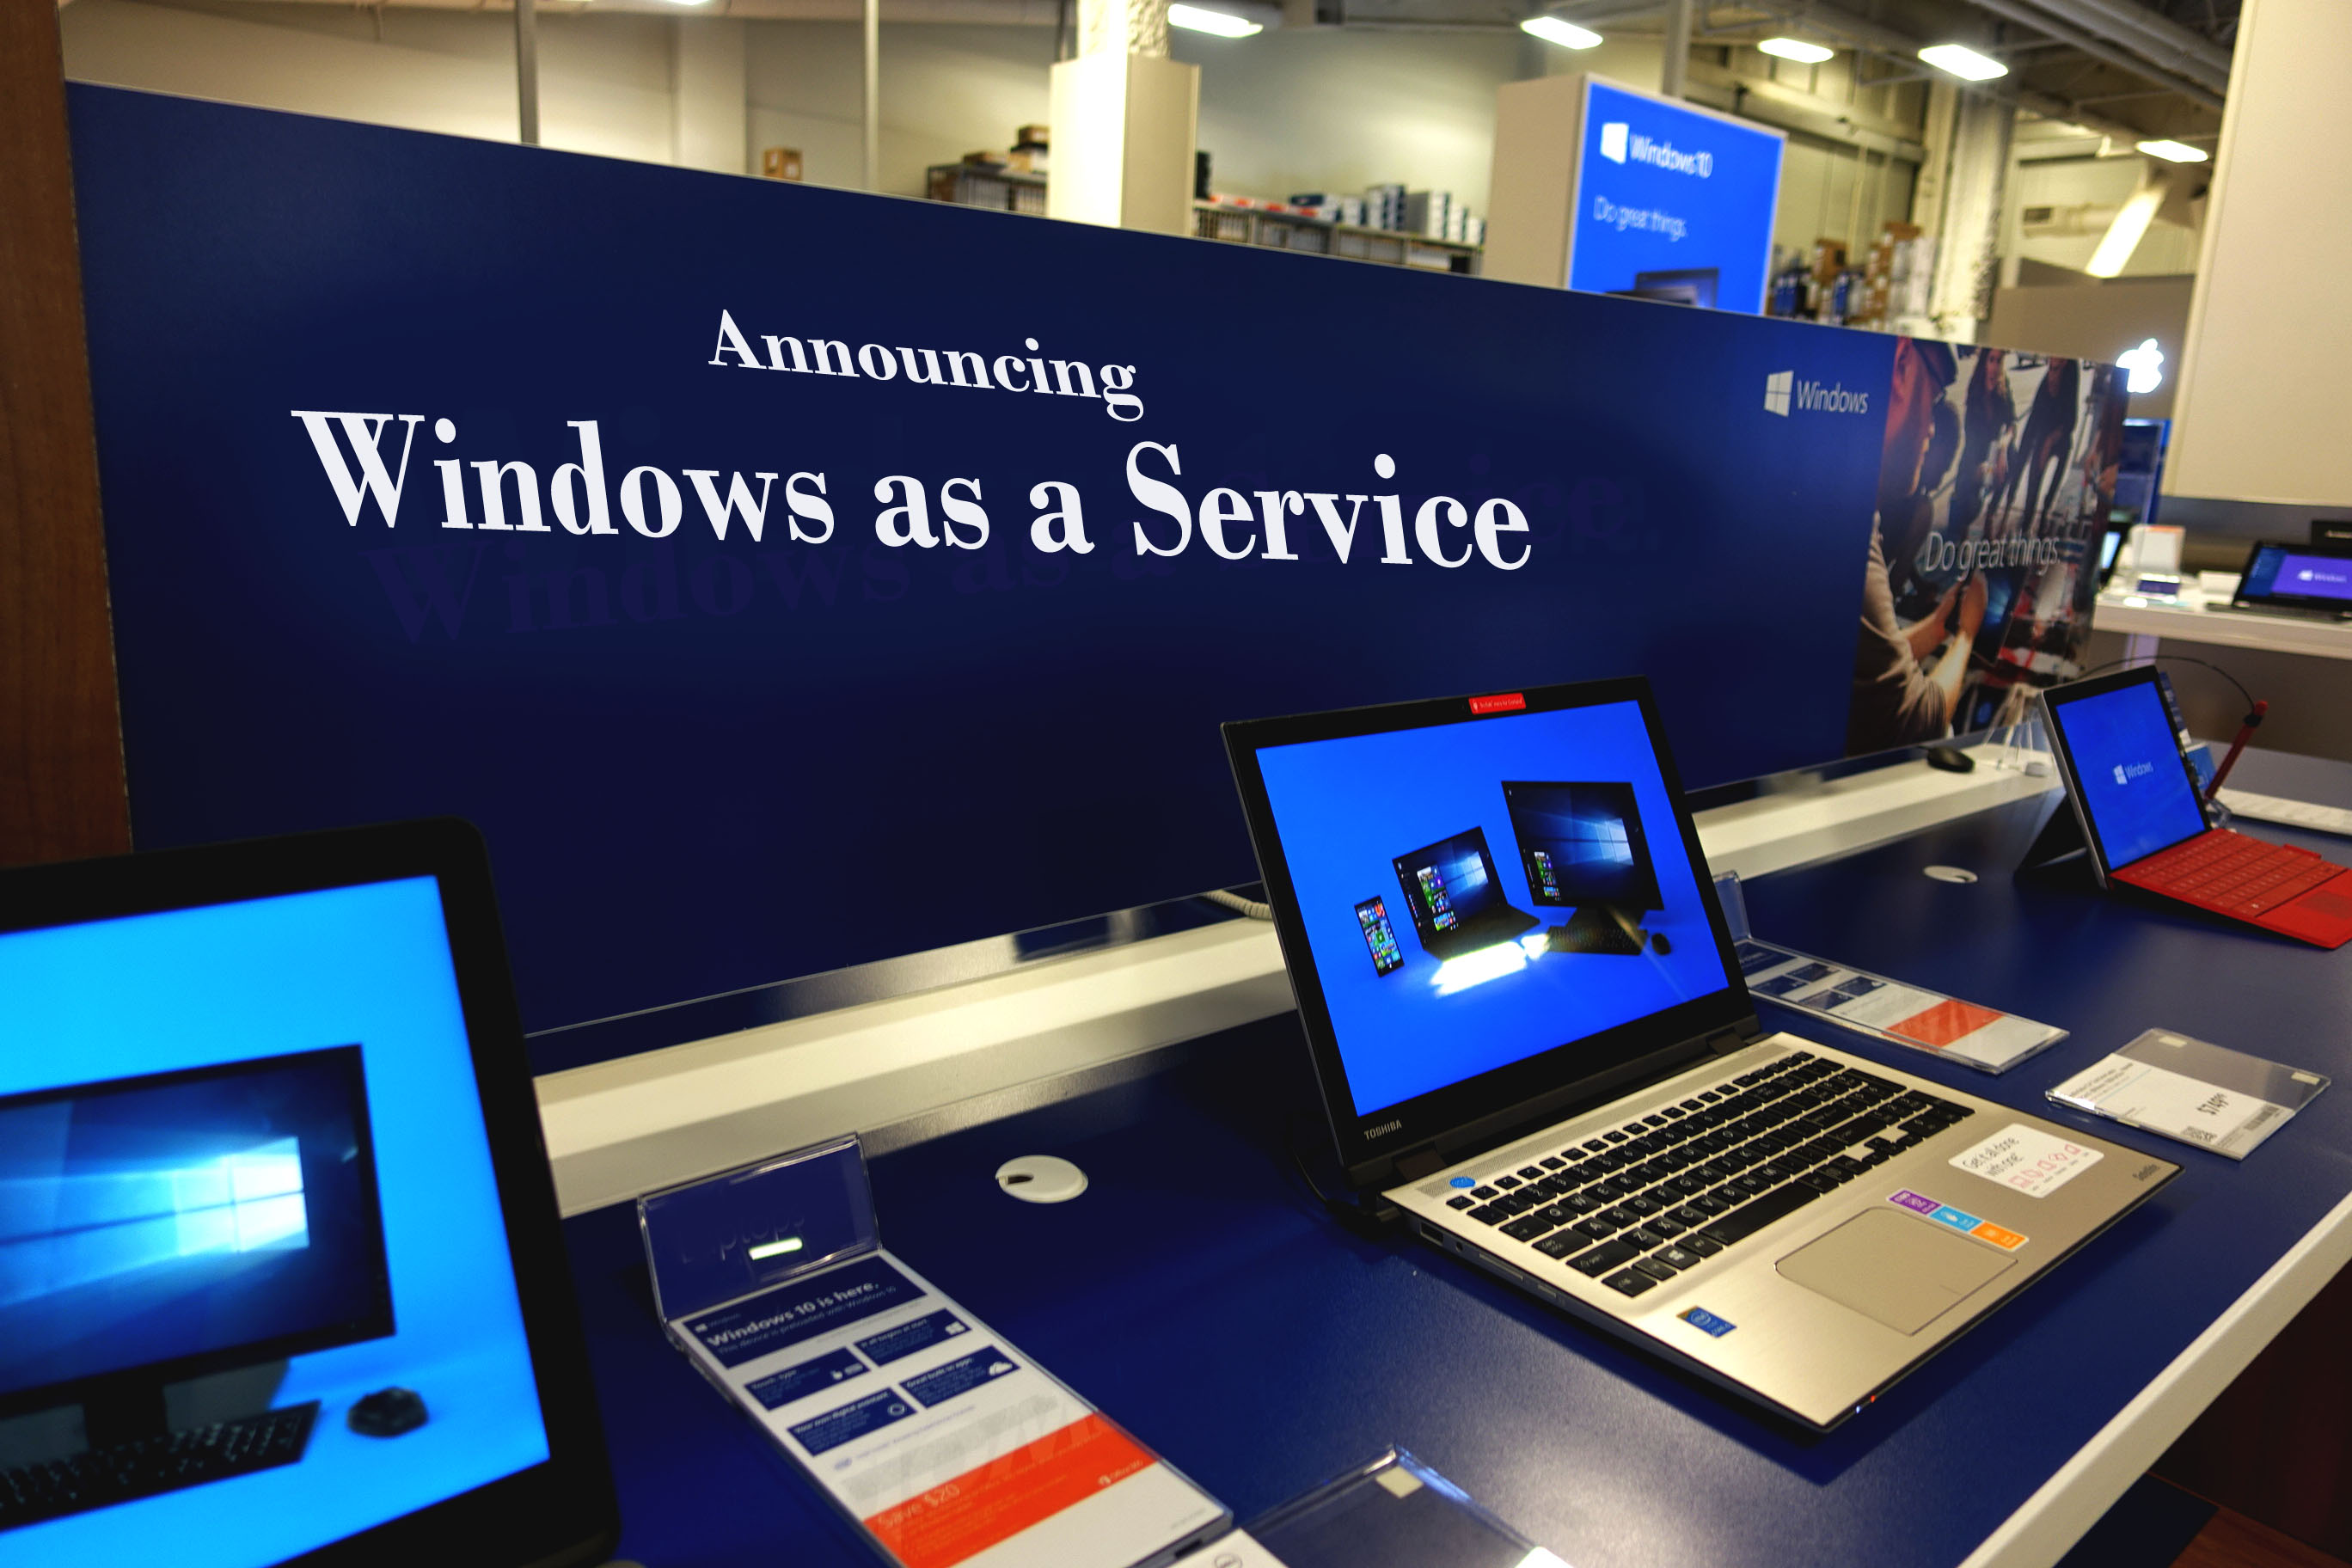 Reviewing Windows as a Service